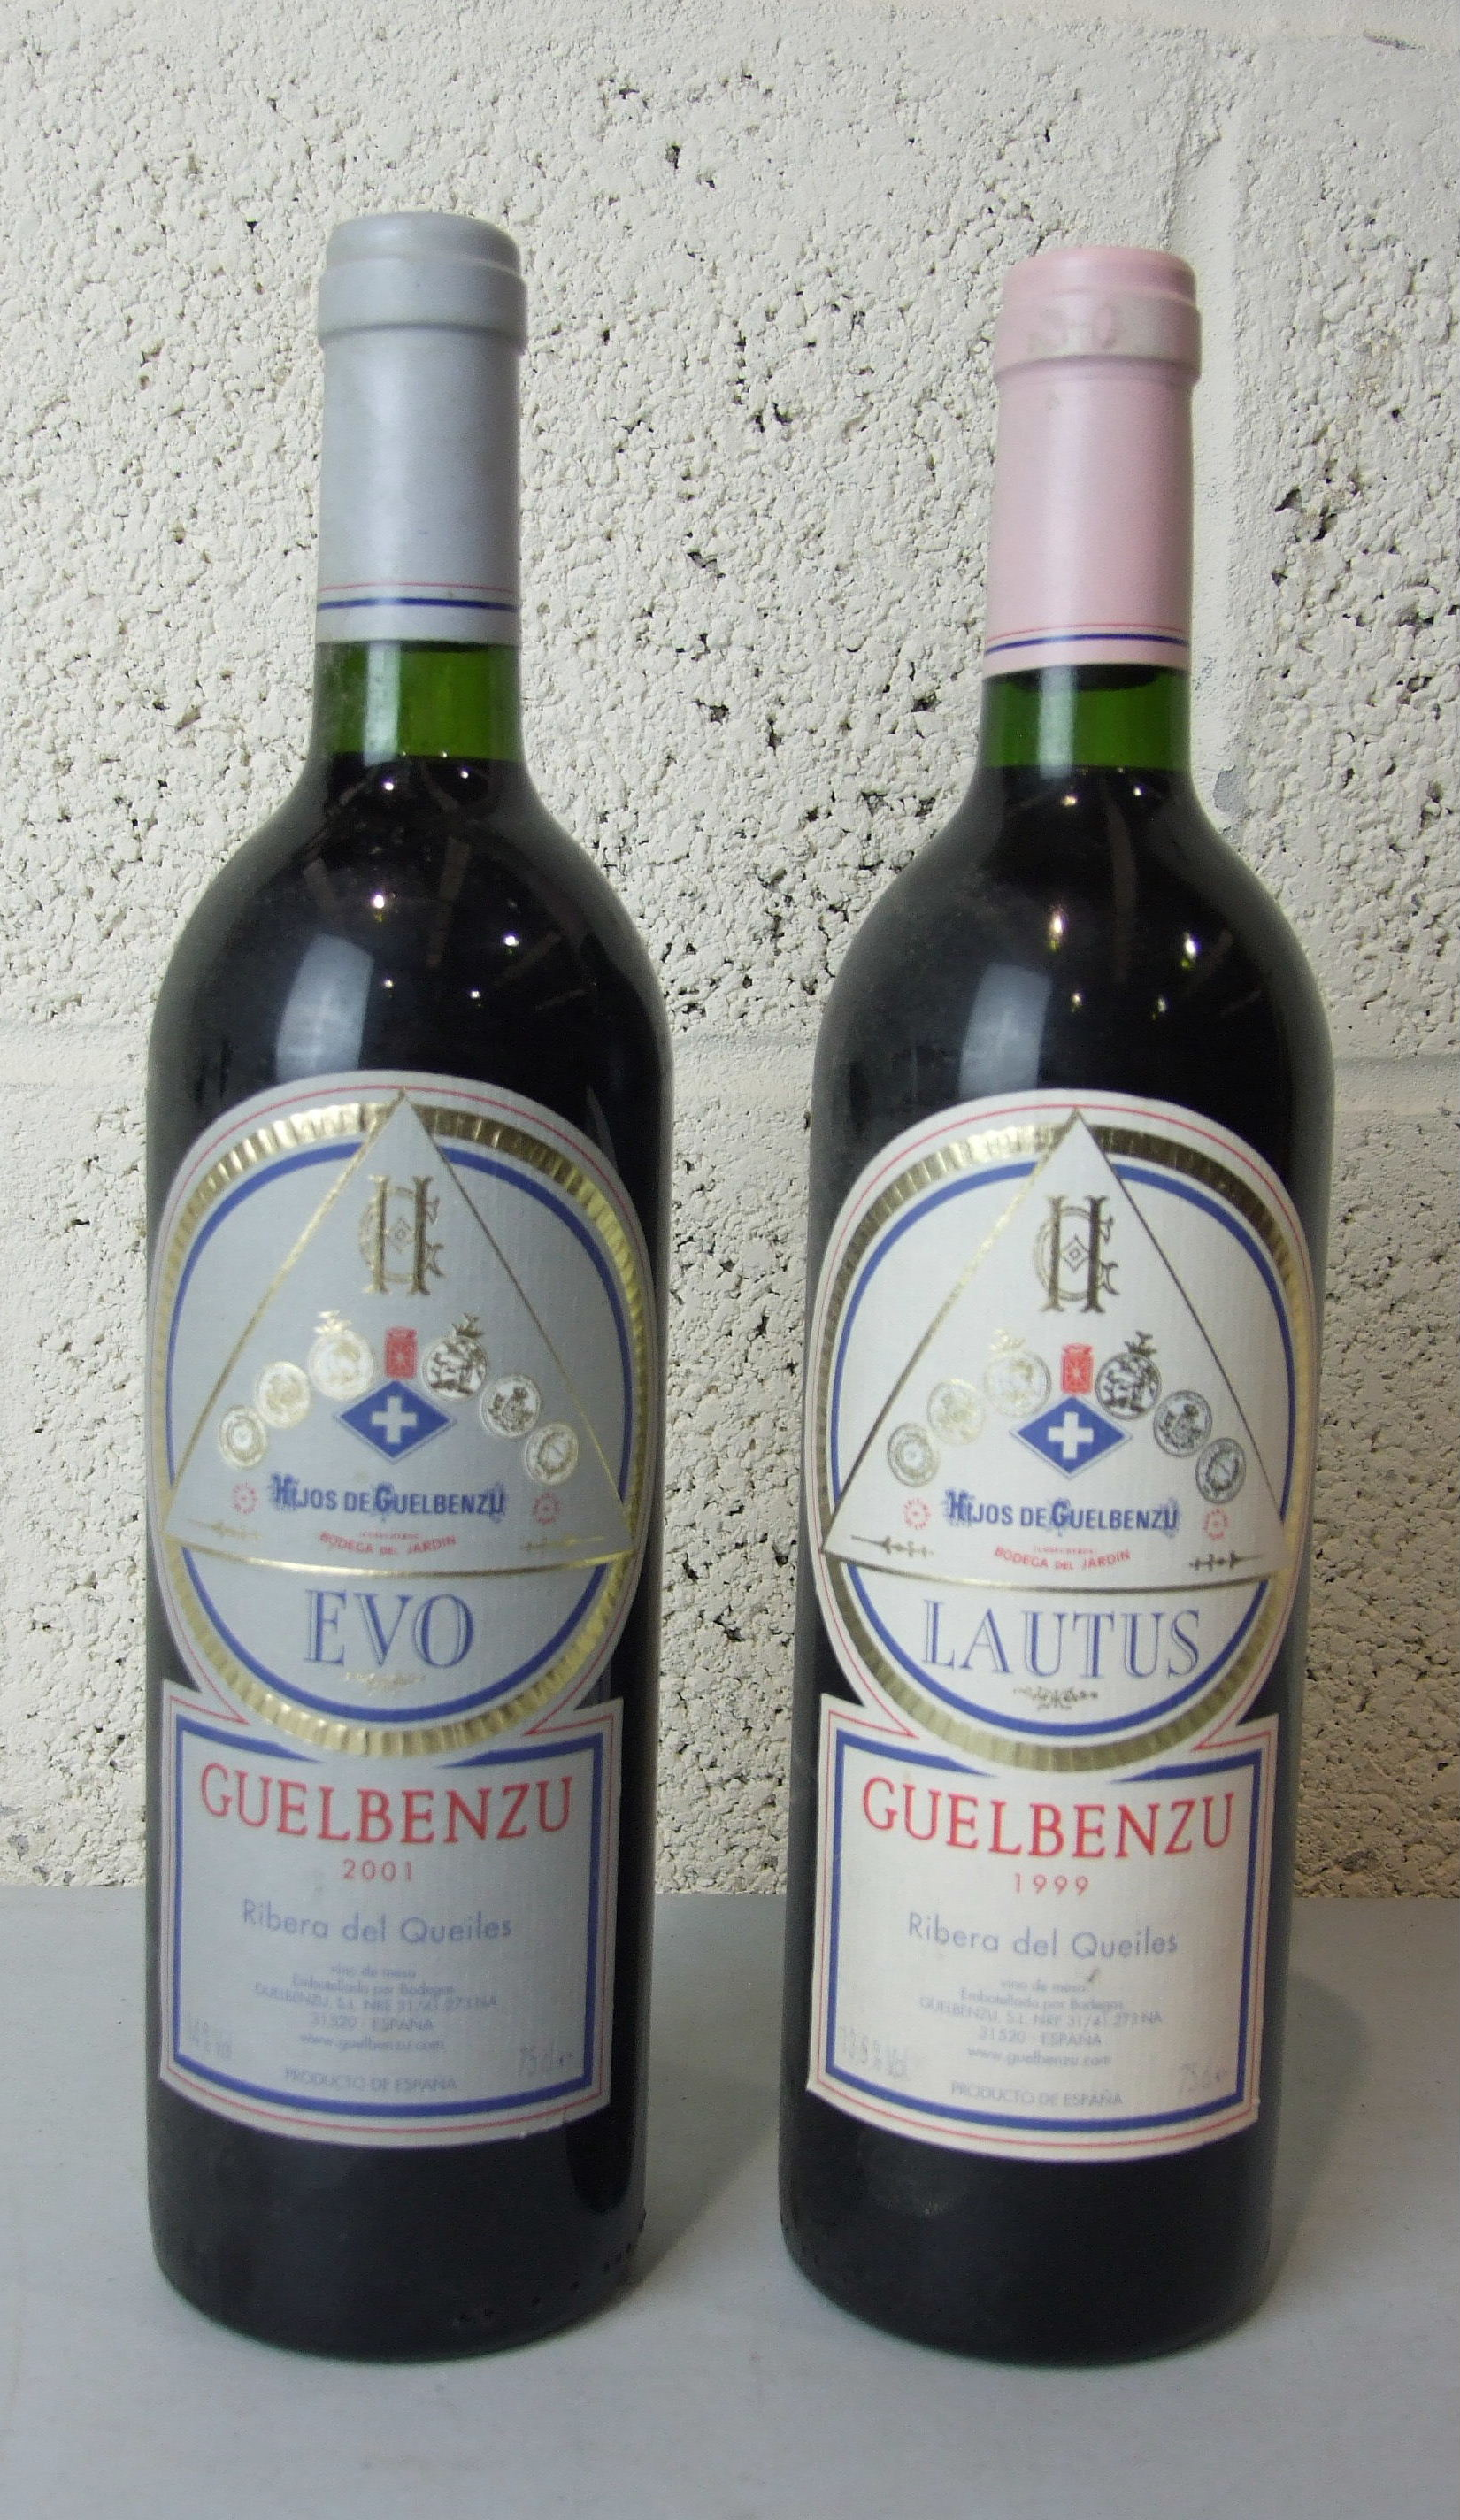 Lot 40 - Spain, Guelbenzu Ribera del Queiles Evo 2001, one bottle, 2003, three bottles, Lautus 1999, one